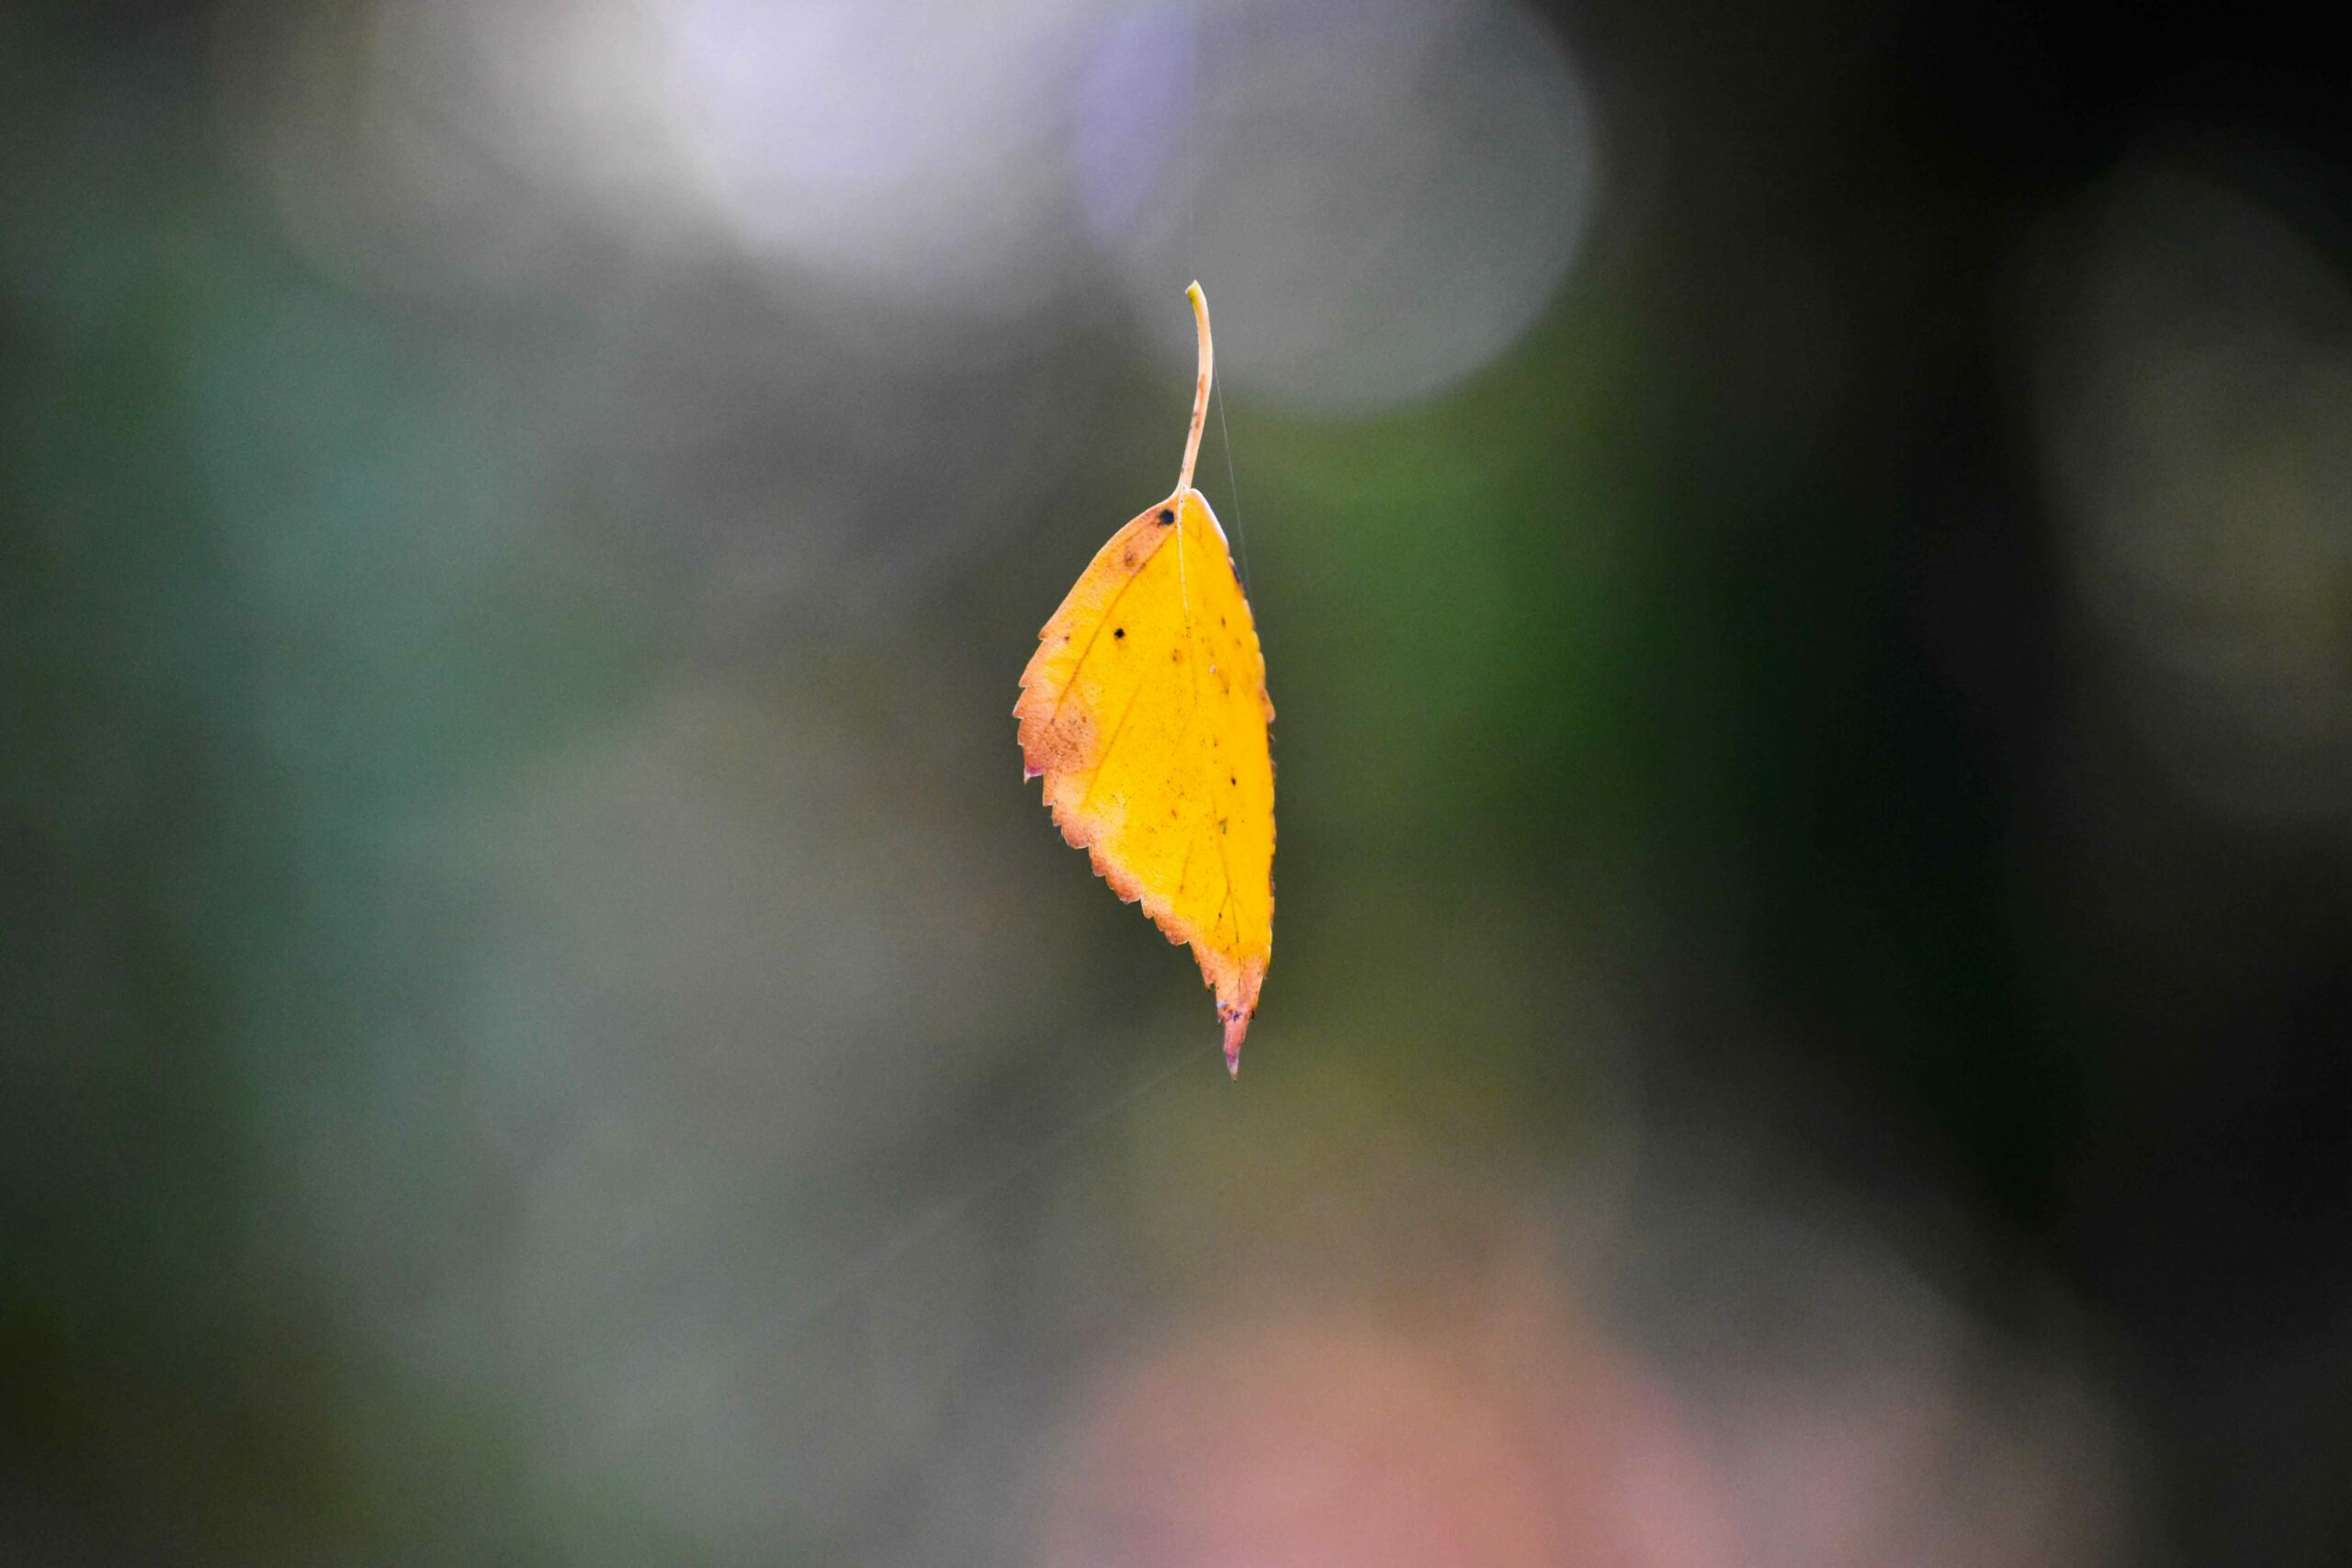 A yellow leaf hangs suspended from spider silk